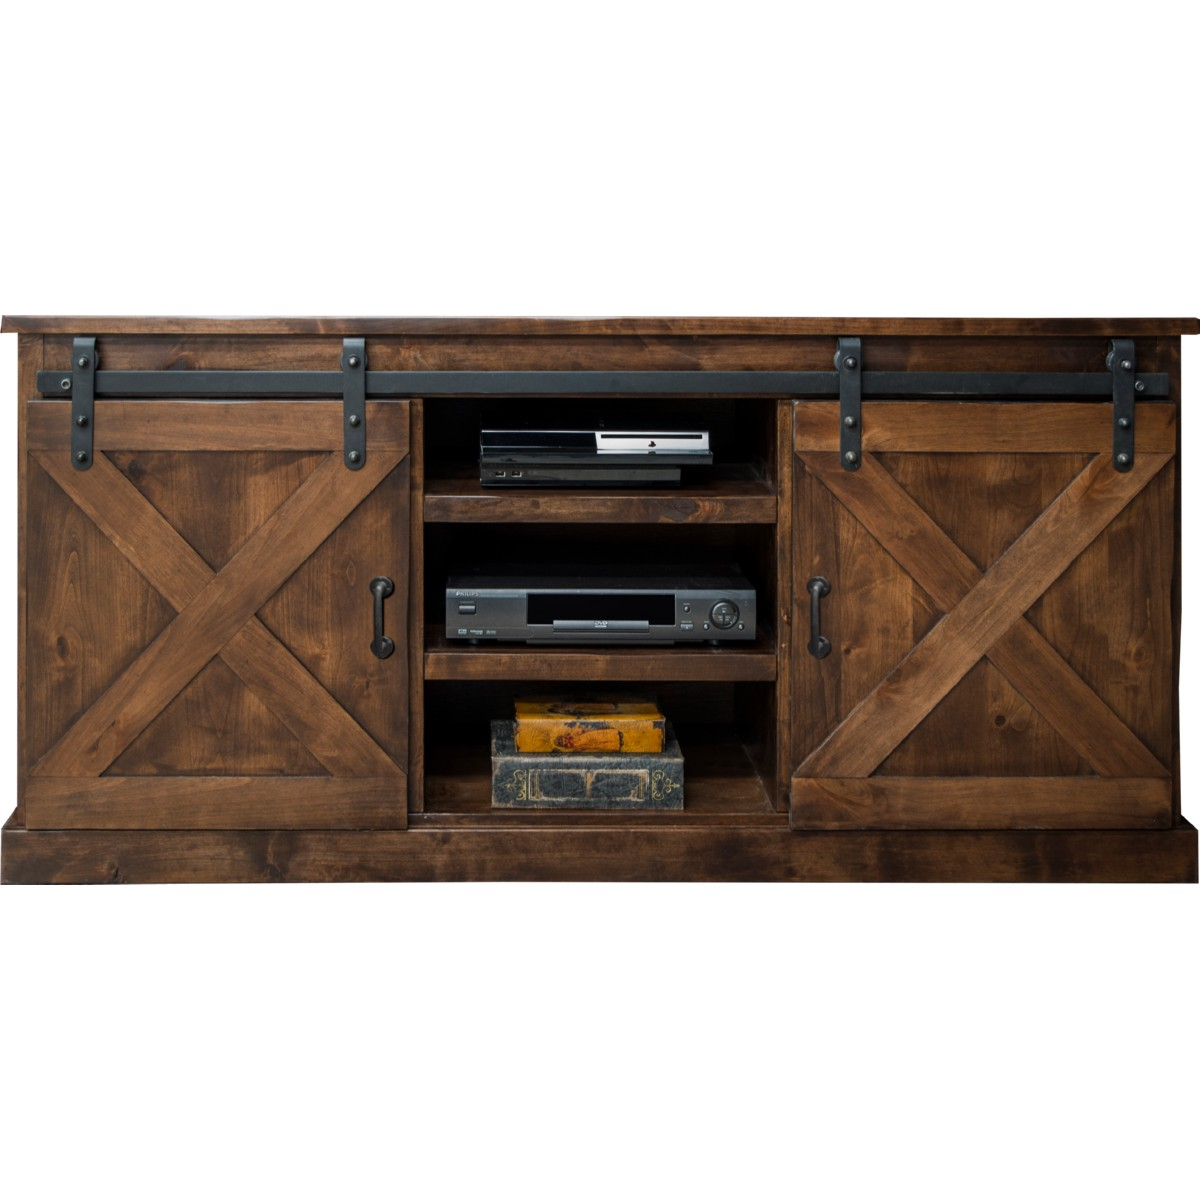 legends furniture fh farmhouse  tv stand console in  - farmhouse  tv stand console in distressed aged whiskey w sliding barndoors